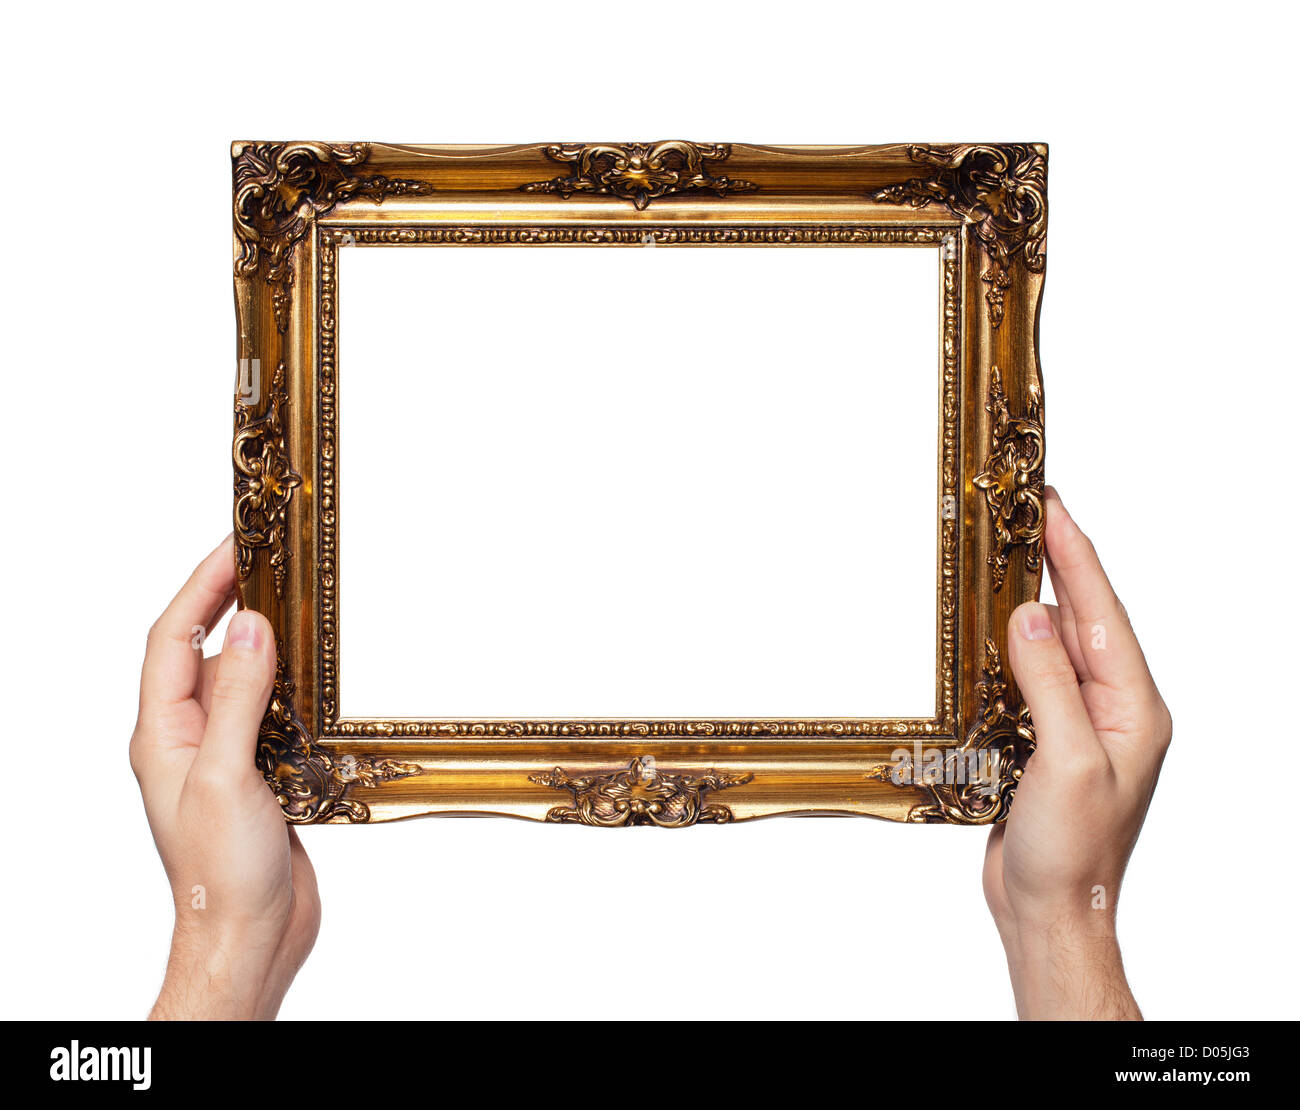 Man Holding Antique Style Golden Color Picture Frame In His Hands.